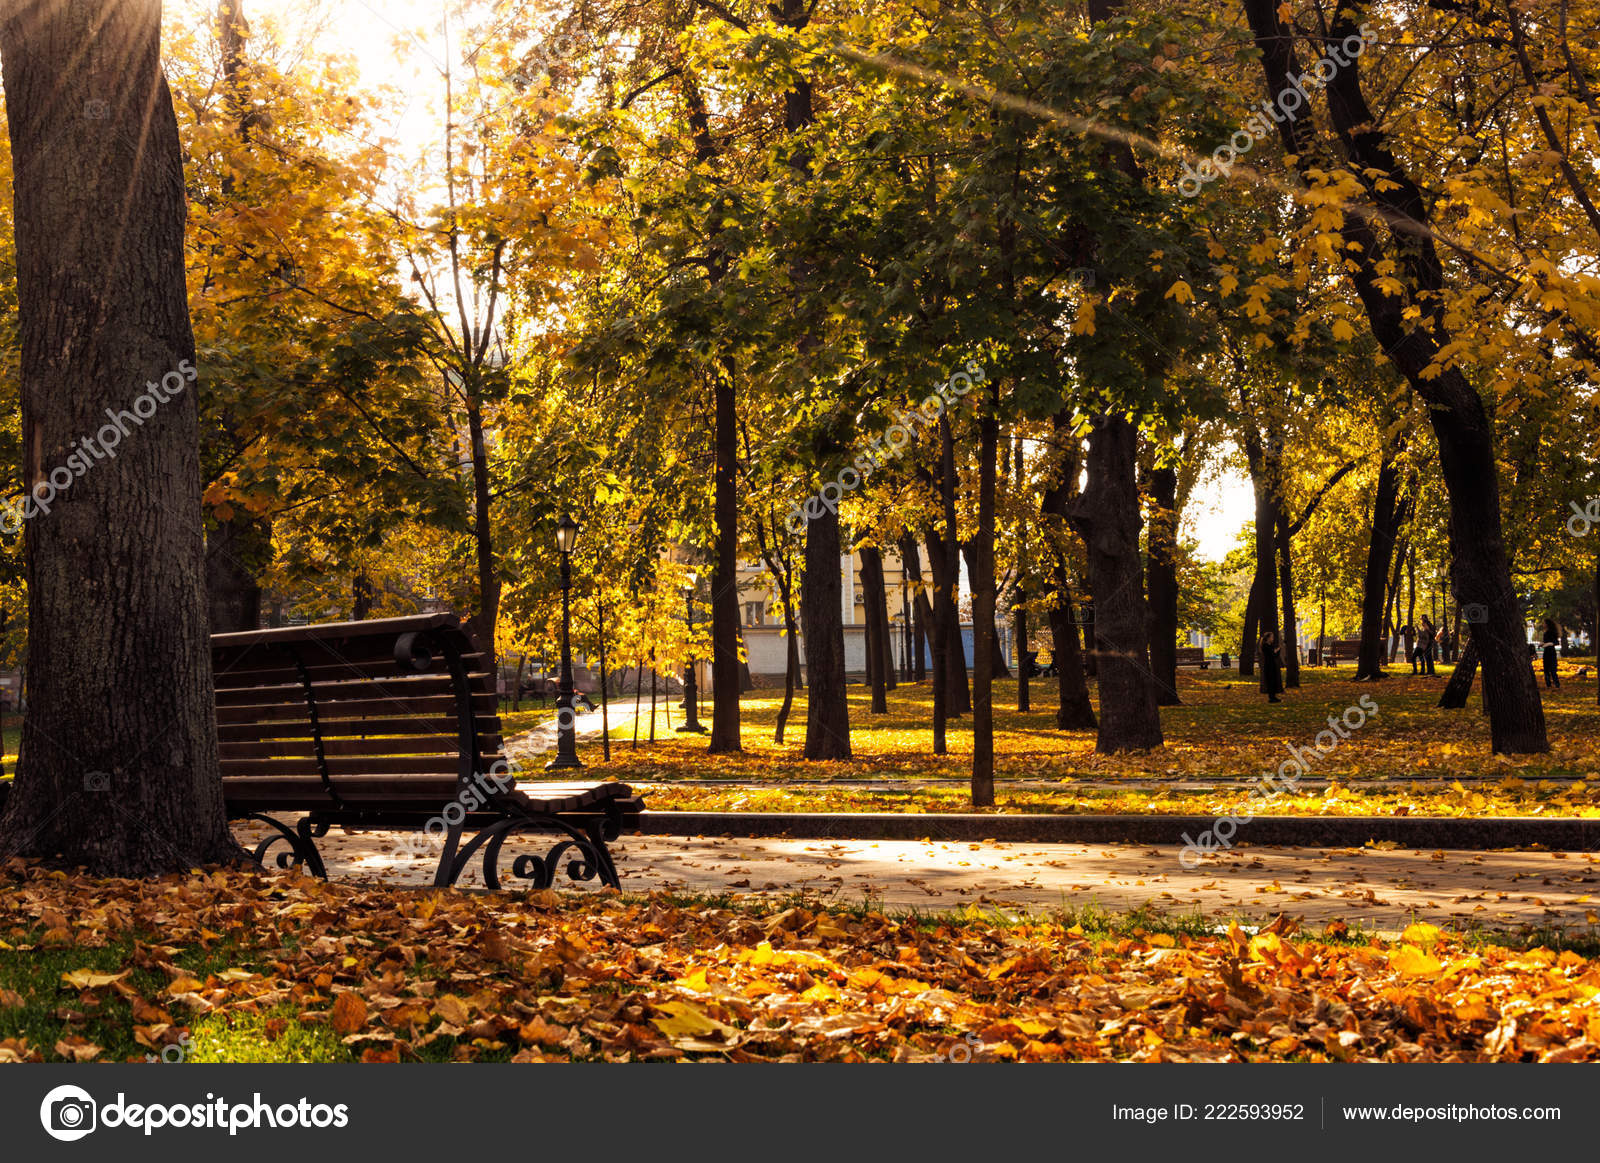 Wooden Bench Autumn Park Sunny Day Stock Photo